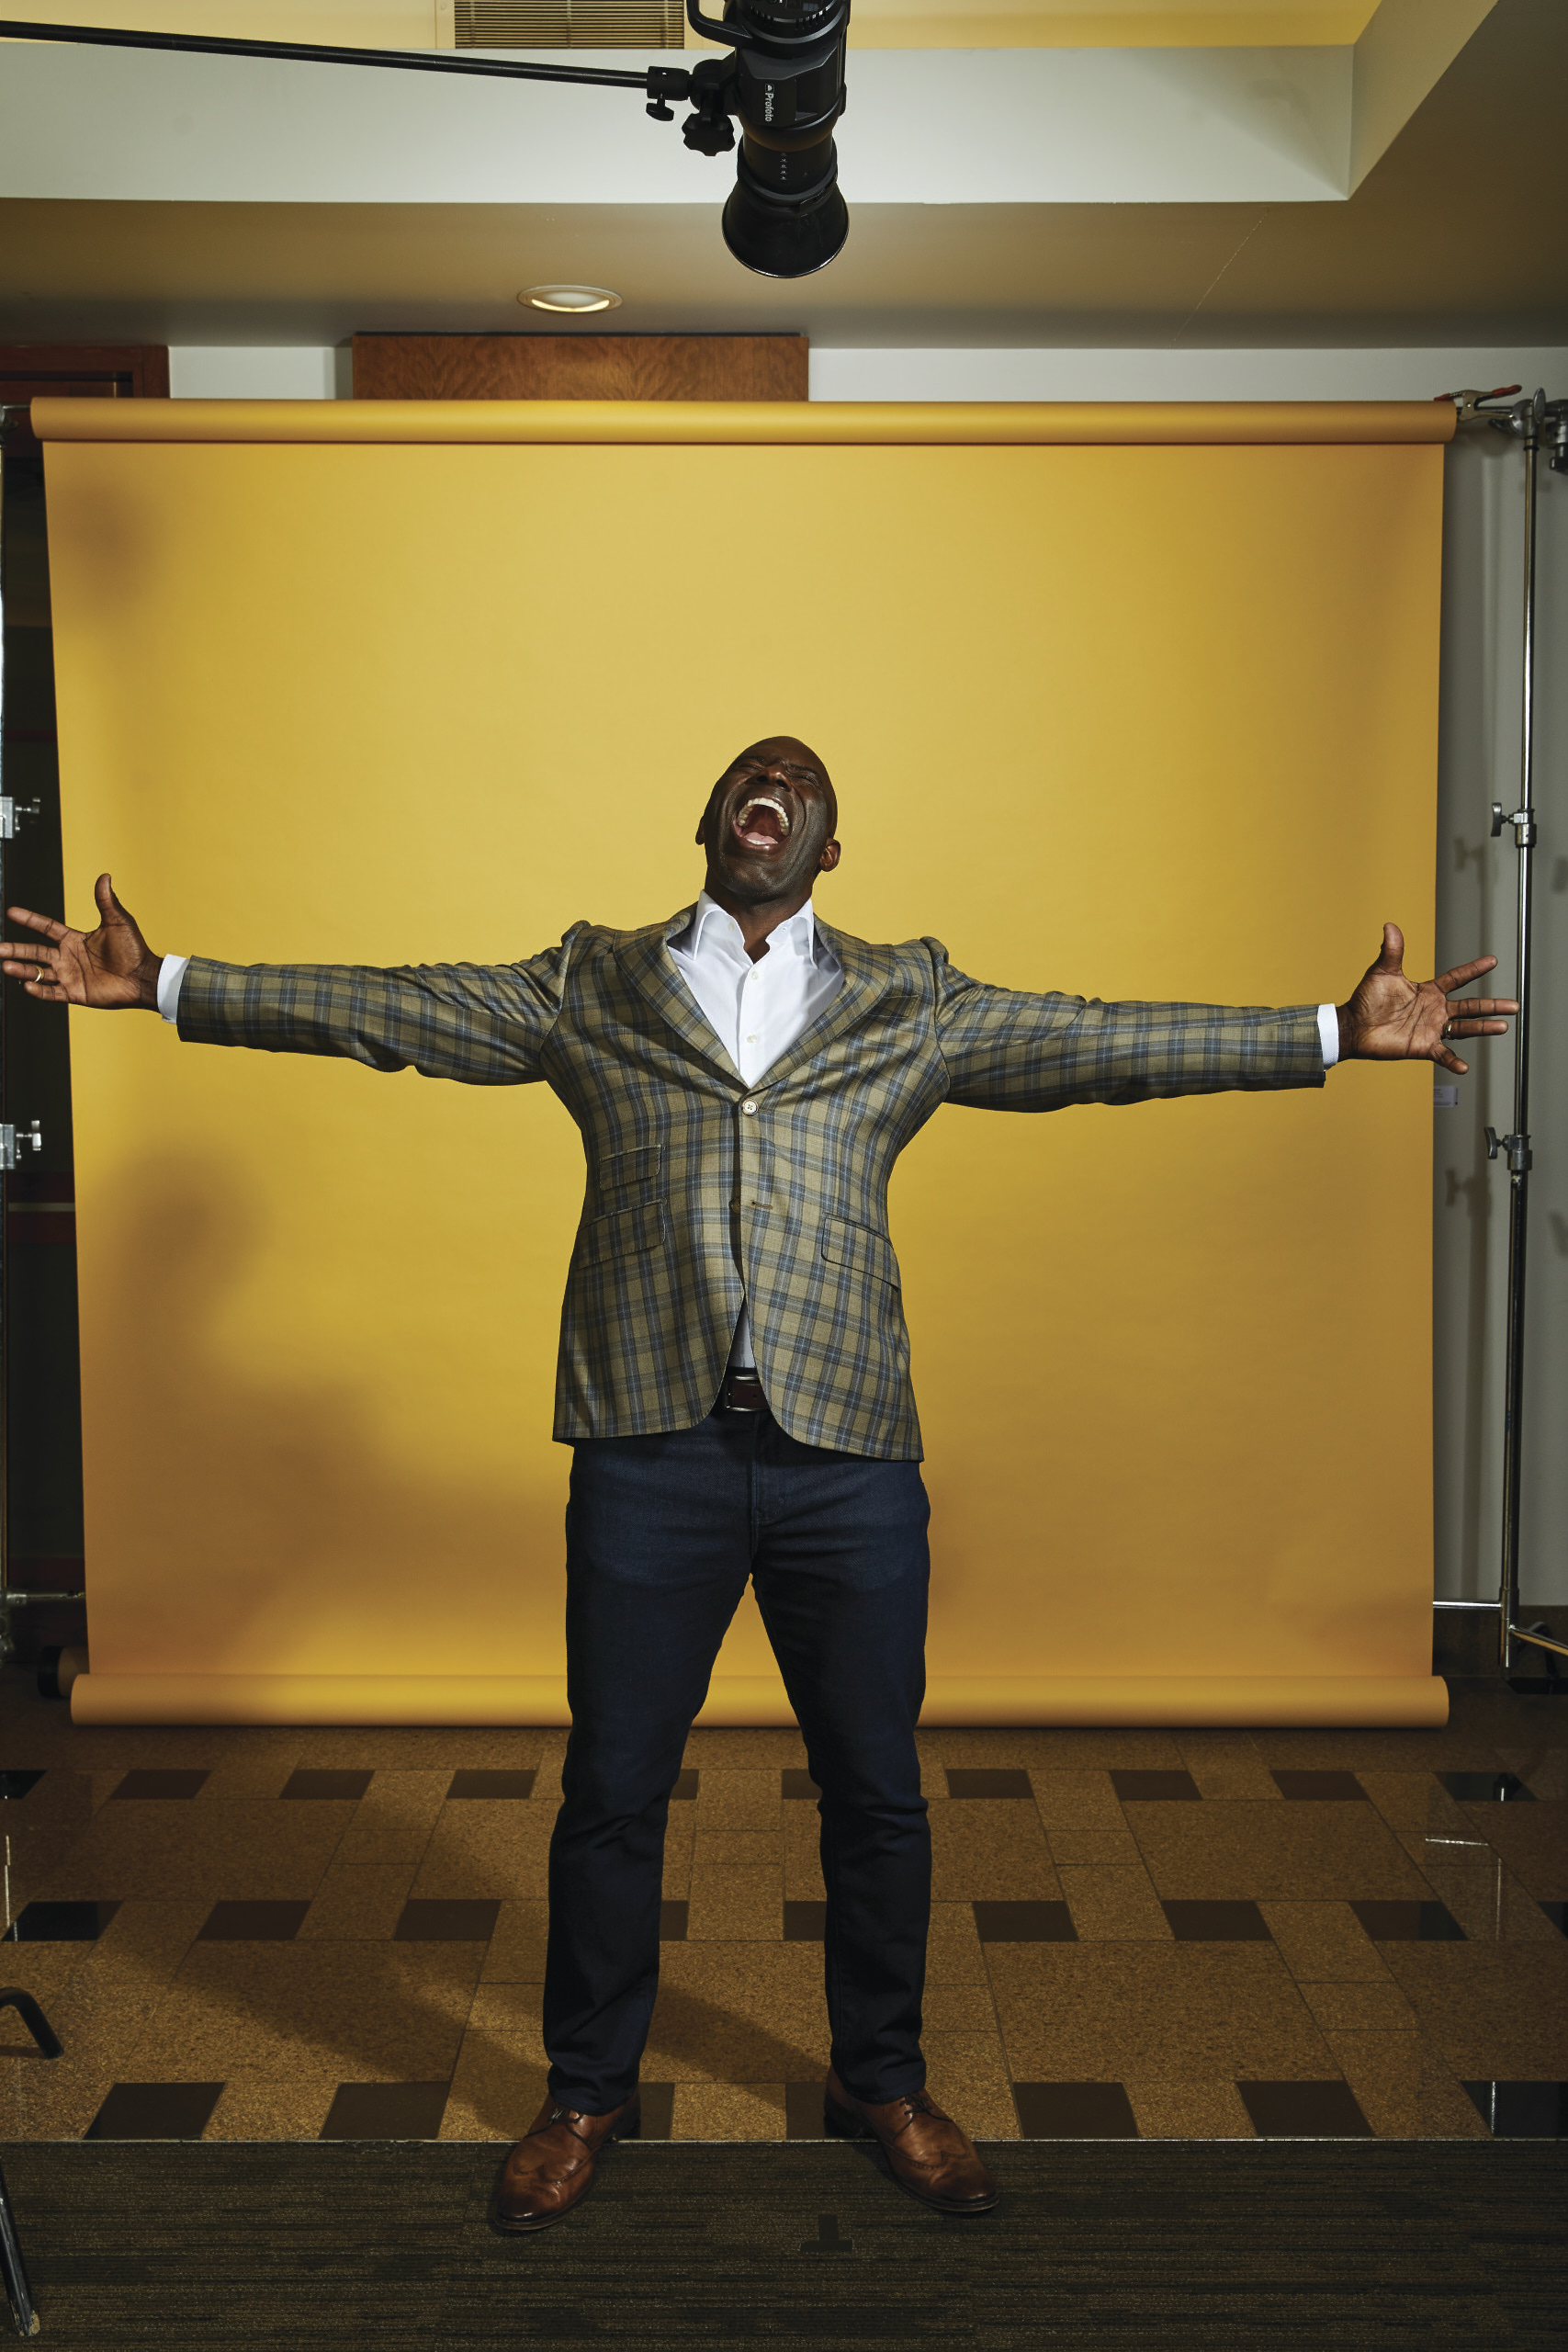 Terrell Davis on yellow background